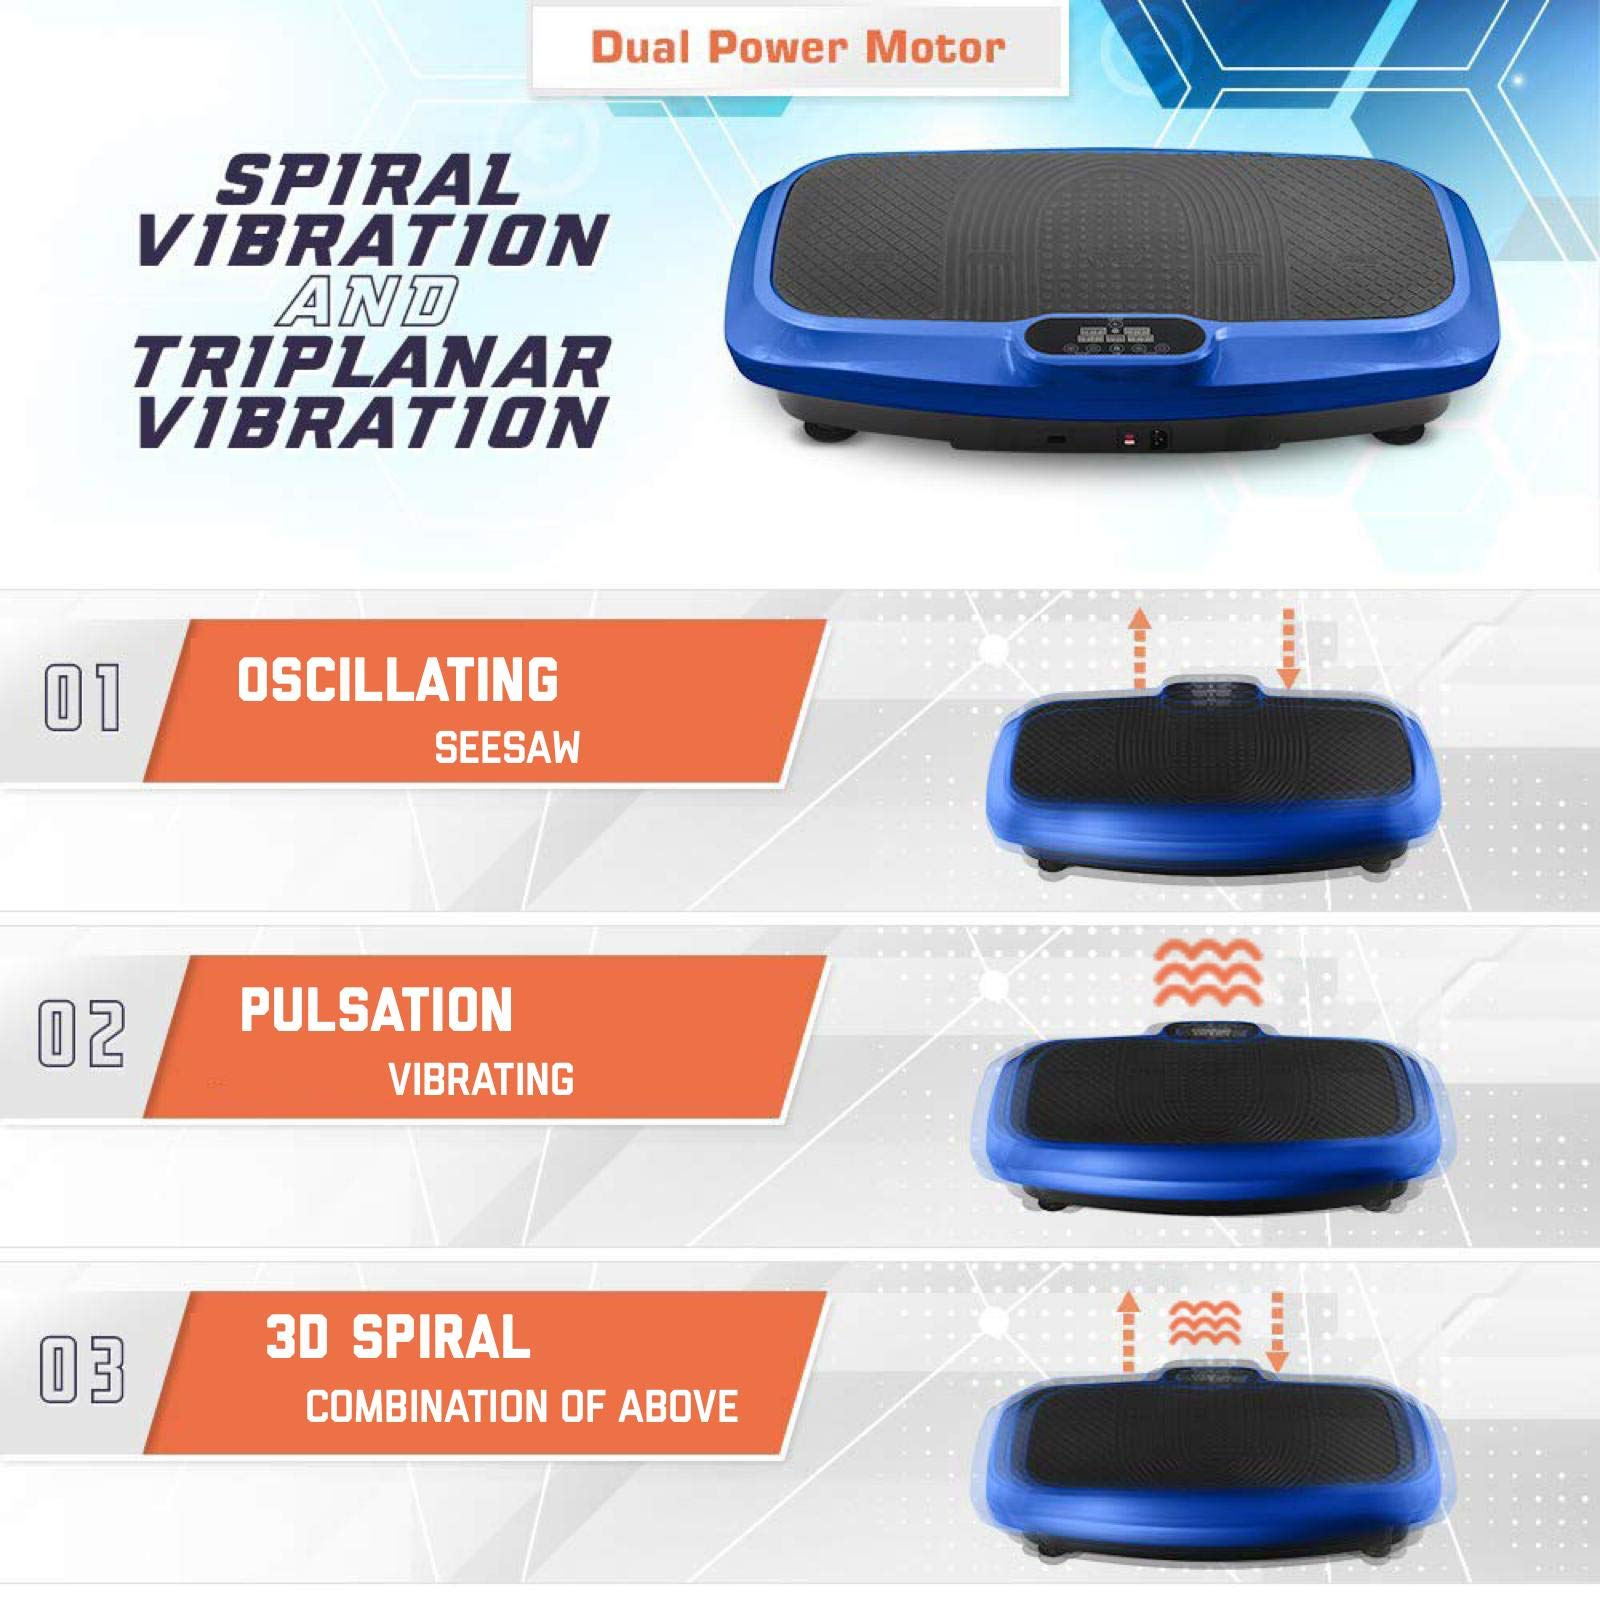 LifePro 3D Vibration Plate Exercise Machine - Dual Motor Oscillation, Pulsation + 3D Motion Vibration Platform   Full Whole Body Vibration Machine for Home Fitness, Weight Loss, Toning & Shaping. by LifePro (Image #1)